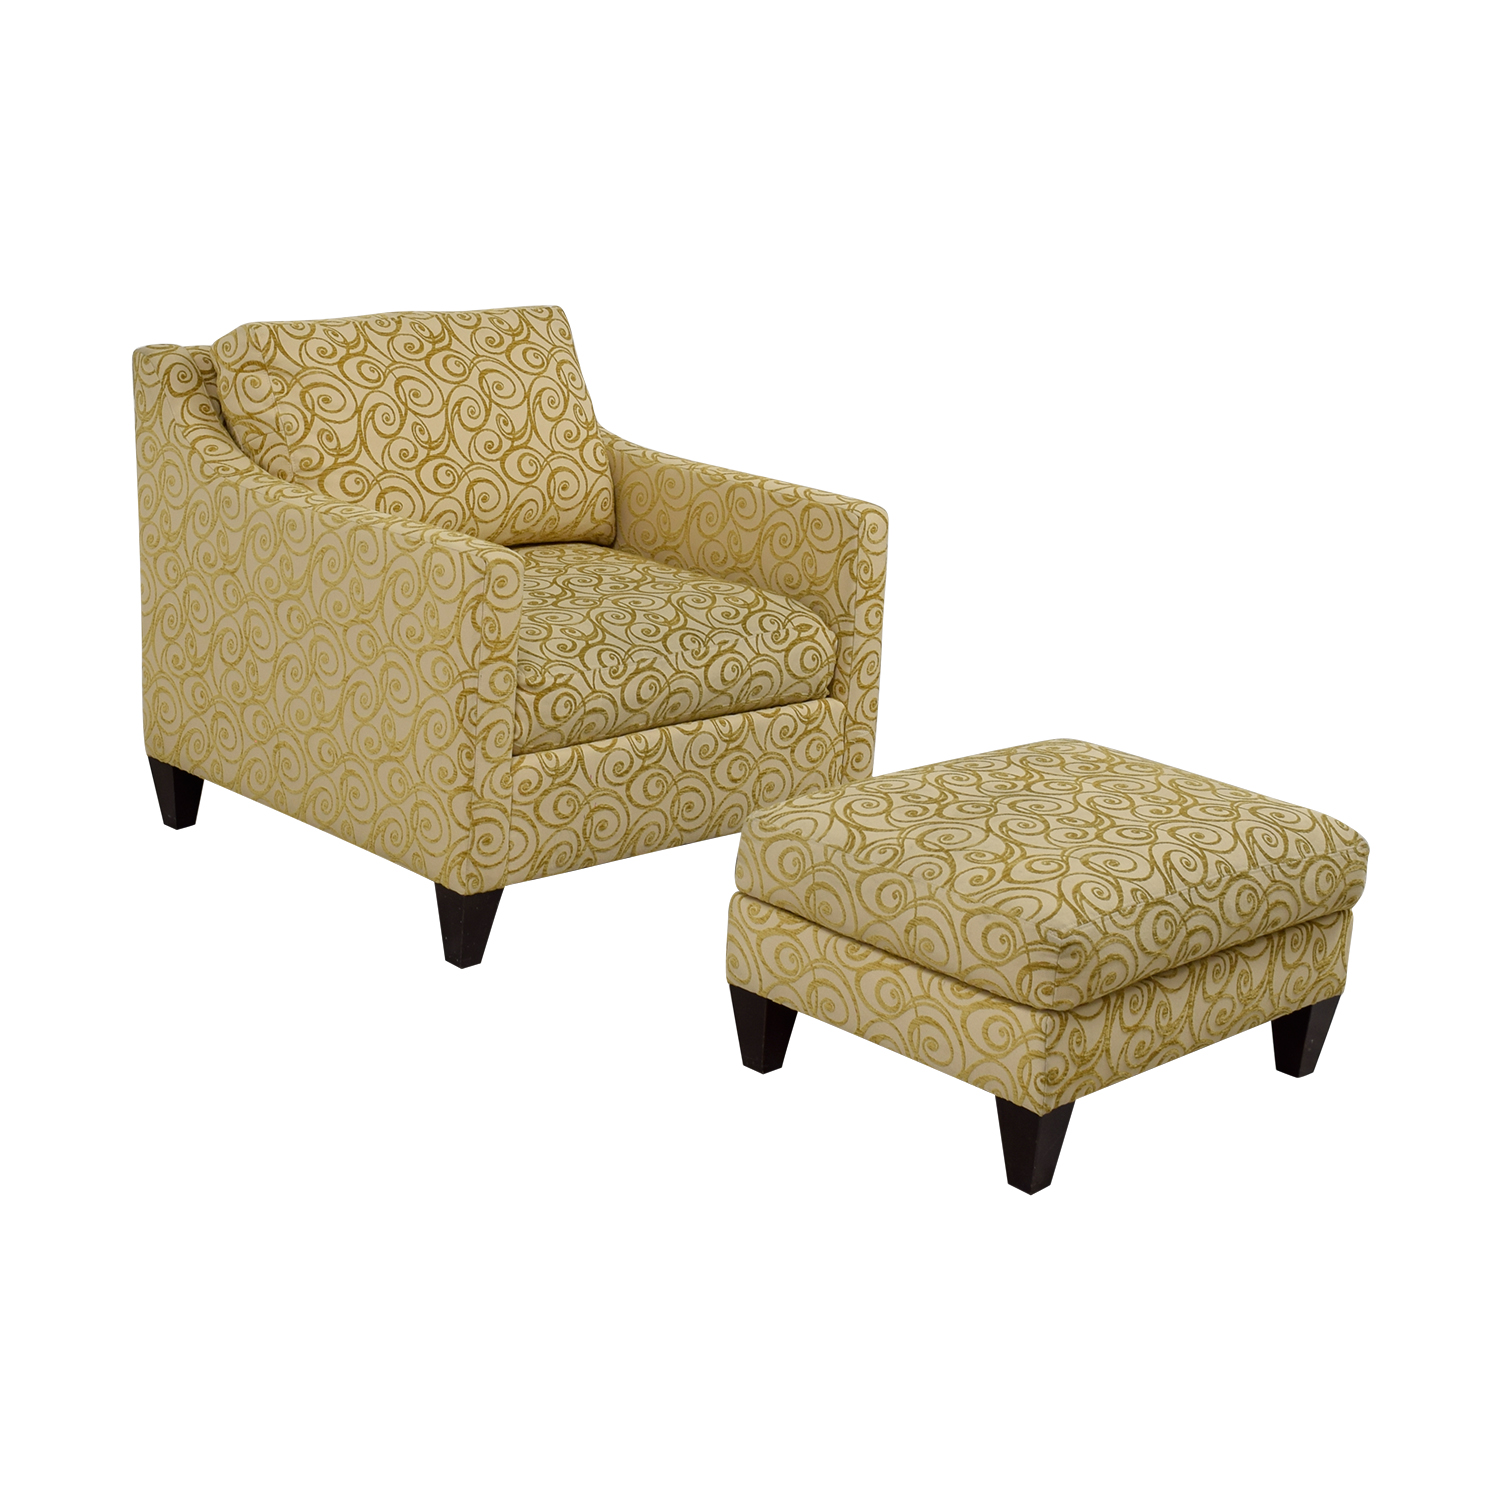 Ethan Allen Ethan Allen Beige and Gold Monterey Chair and Ottoman discount